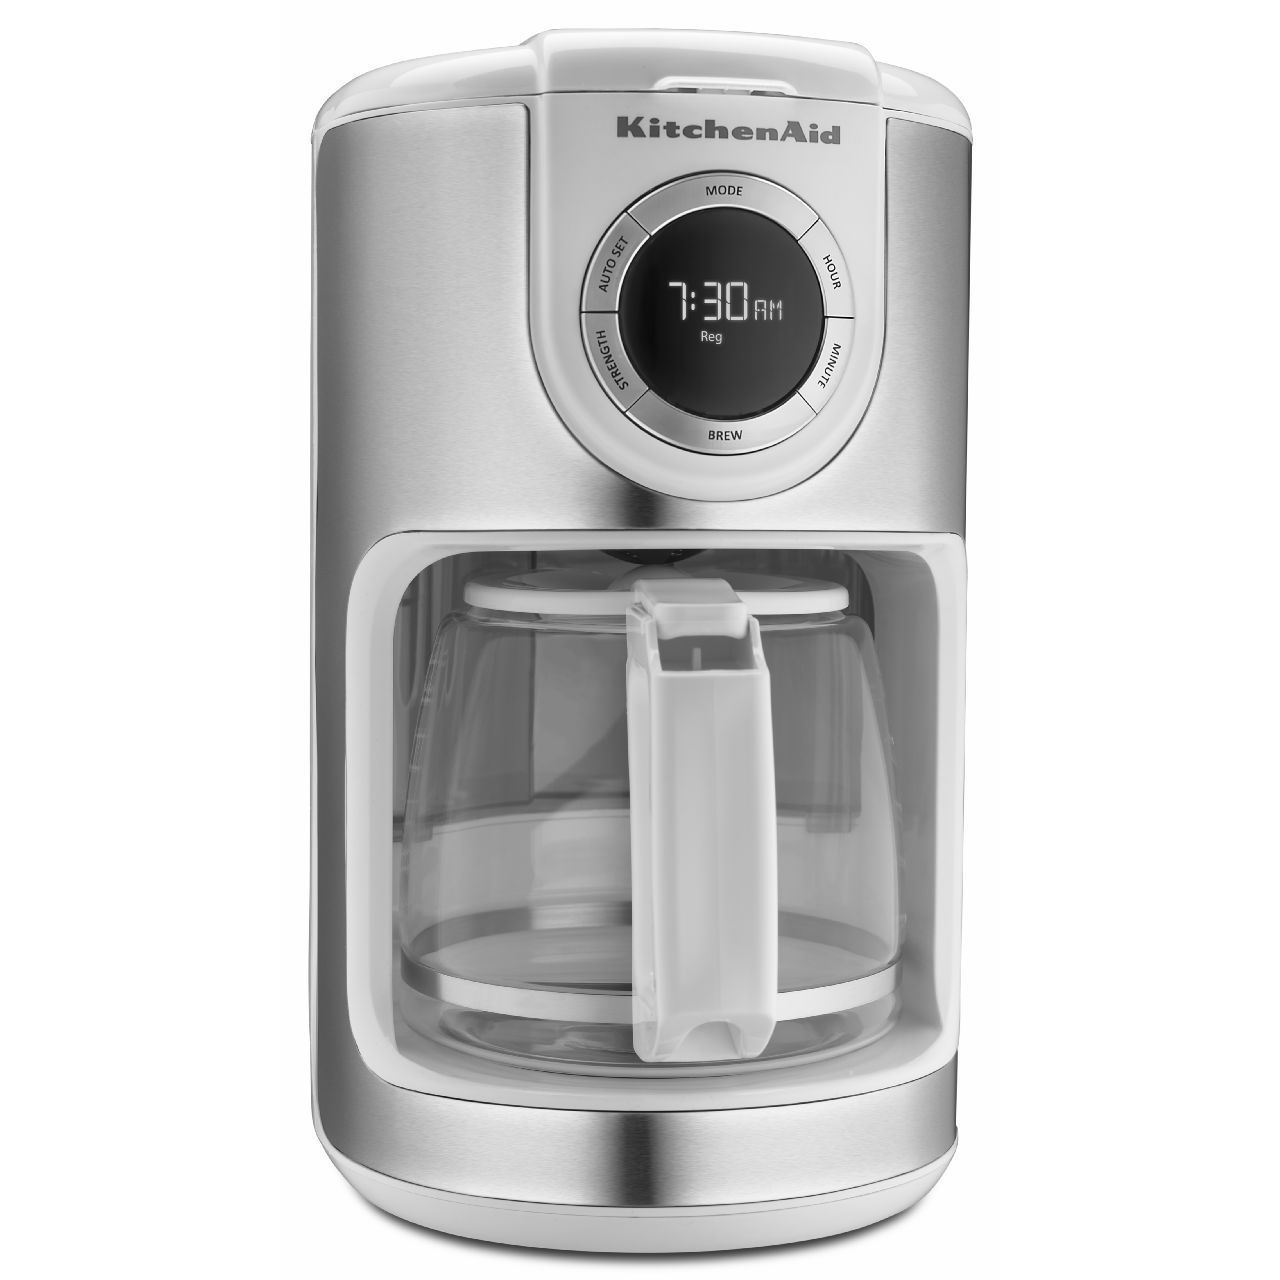 KitchenAid KCM1202WH White 12 cup Glass Carafe Coffee Brown Maker